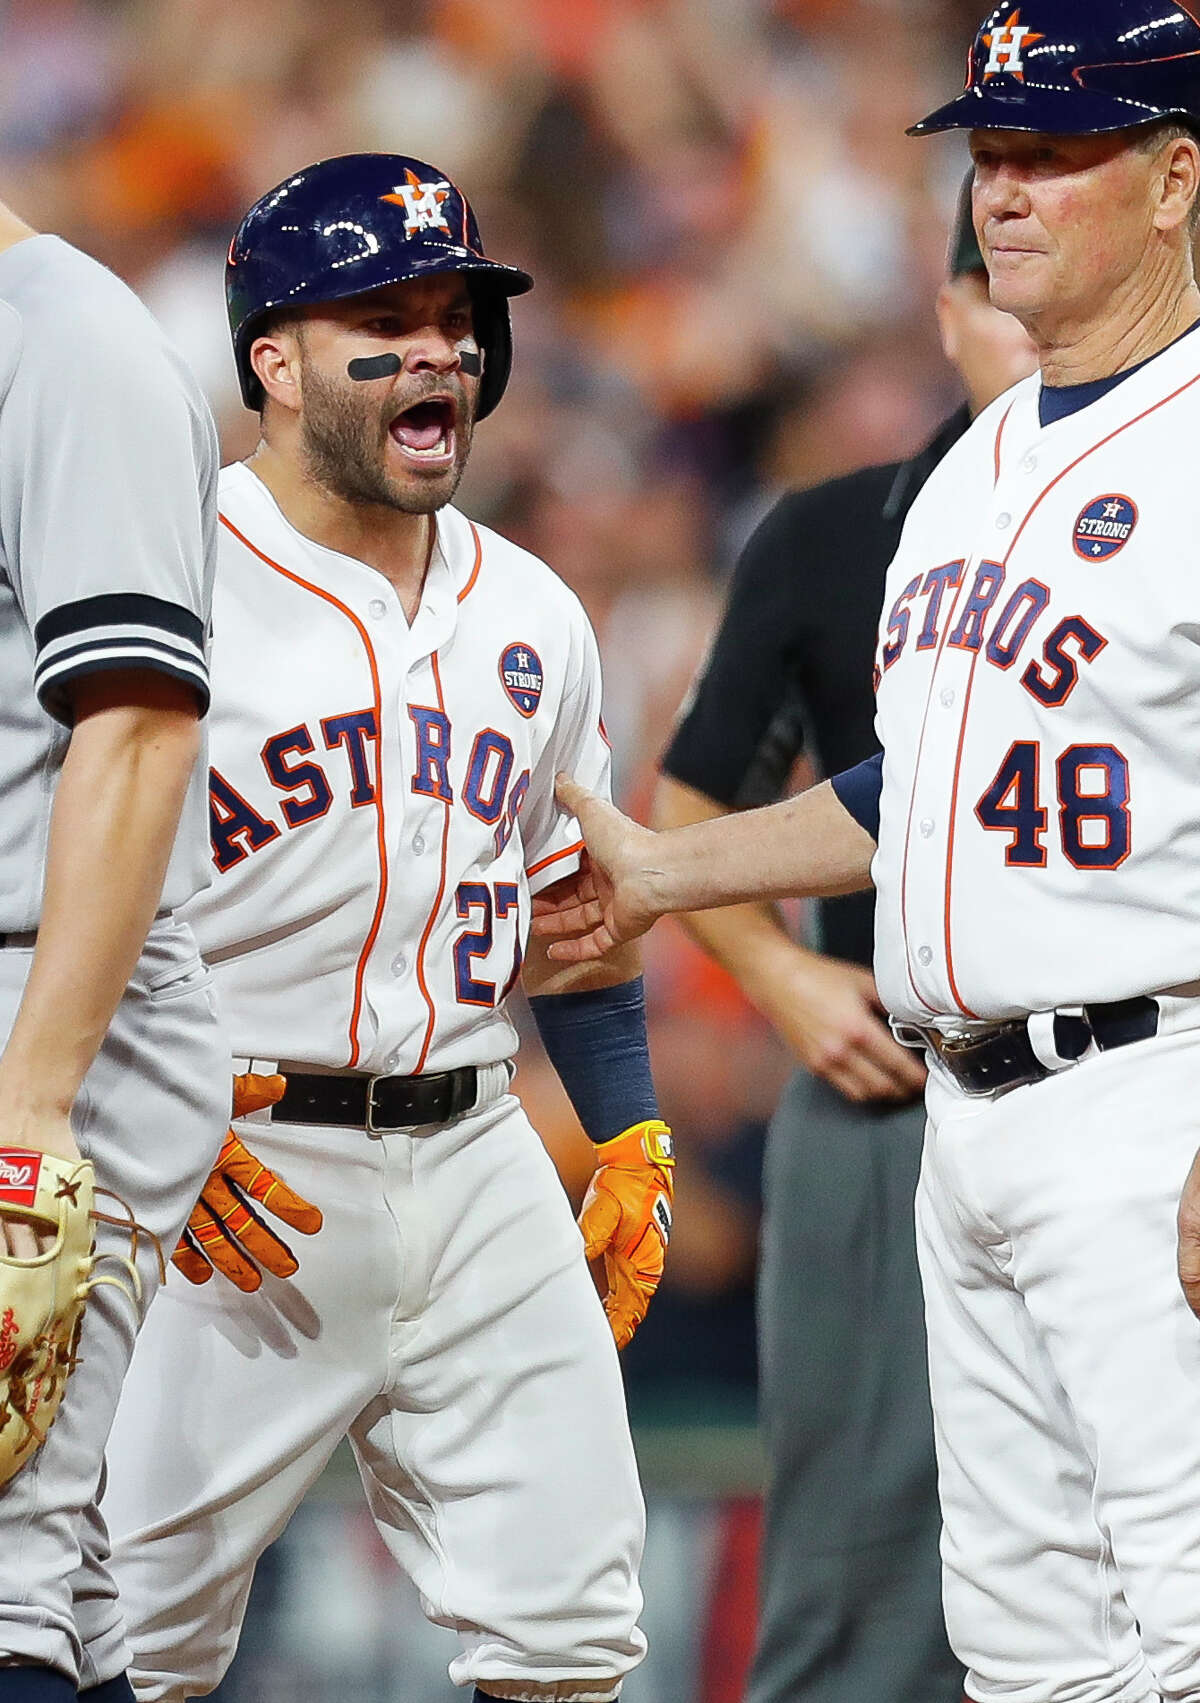 Houston Astros second baseman Jose Altuve (27) celebrates his two-run RBI single that gave the Astros a 3-0 lead over the Yankees in the fifth inning of Game 6 of the ALCS at Minute Maid Park on Friday, Oct. 20, 2017, in Houston. ( Brett Coomer / Houston Chronicle )